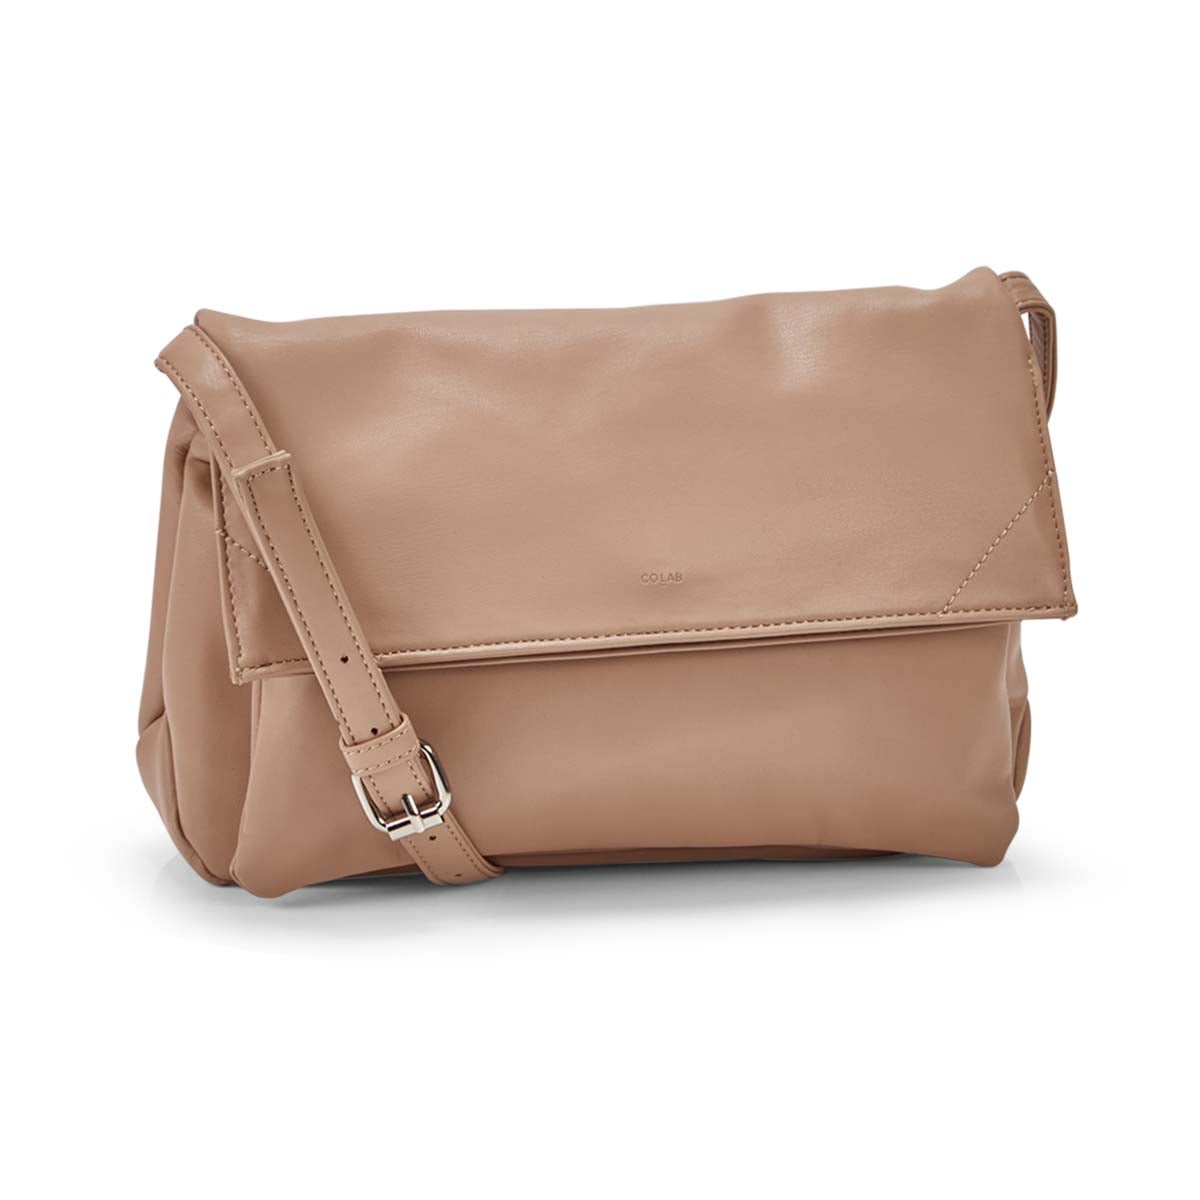 Women's HARLOW foldover beige crossbody bag